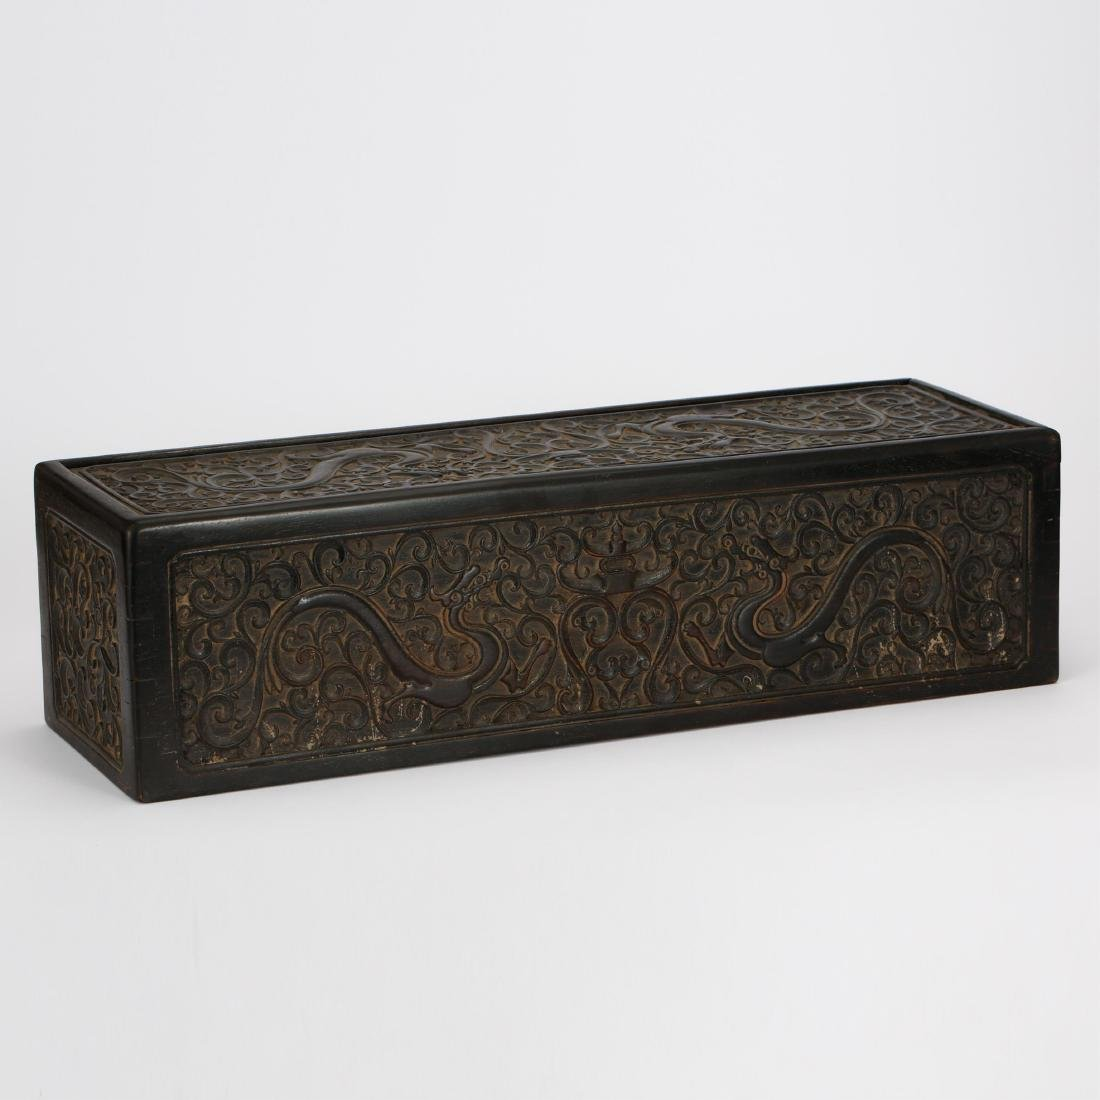 CHINESE ZITAN WOOD SCROLL COVER BOX